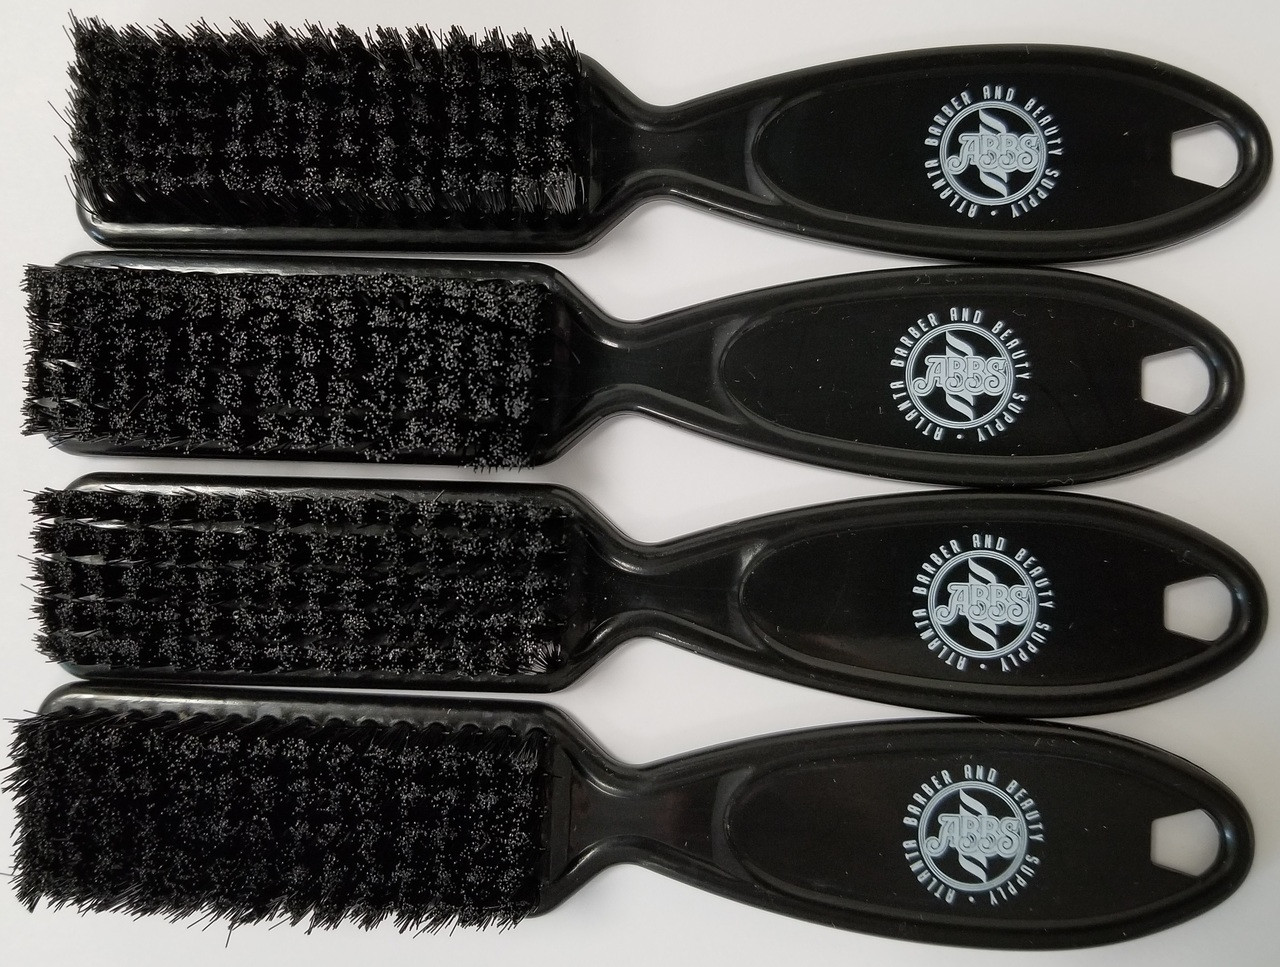 ABBS Clipper Cleaning Brushes - 4 Pack